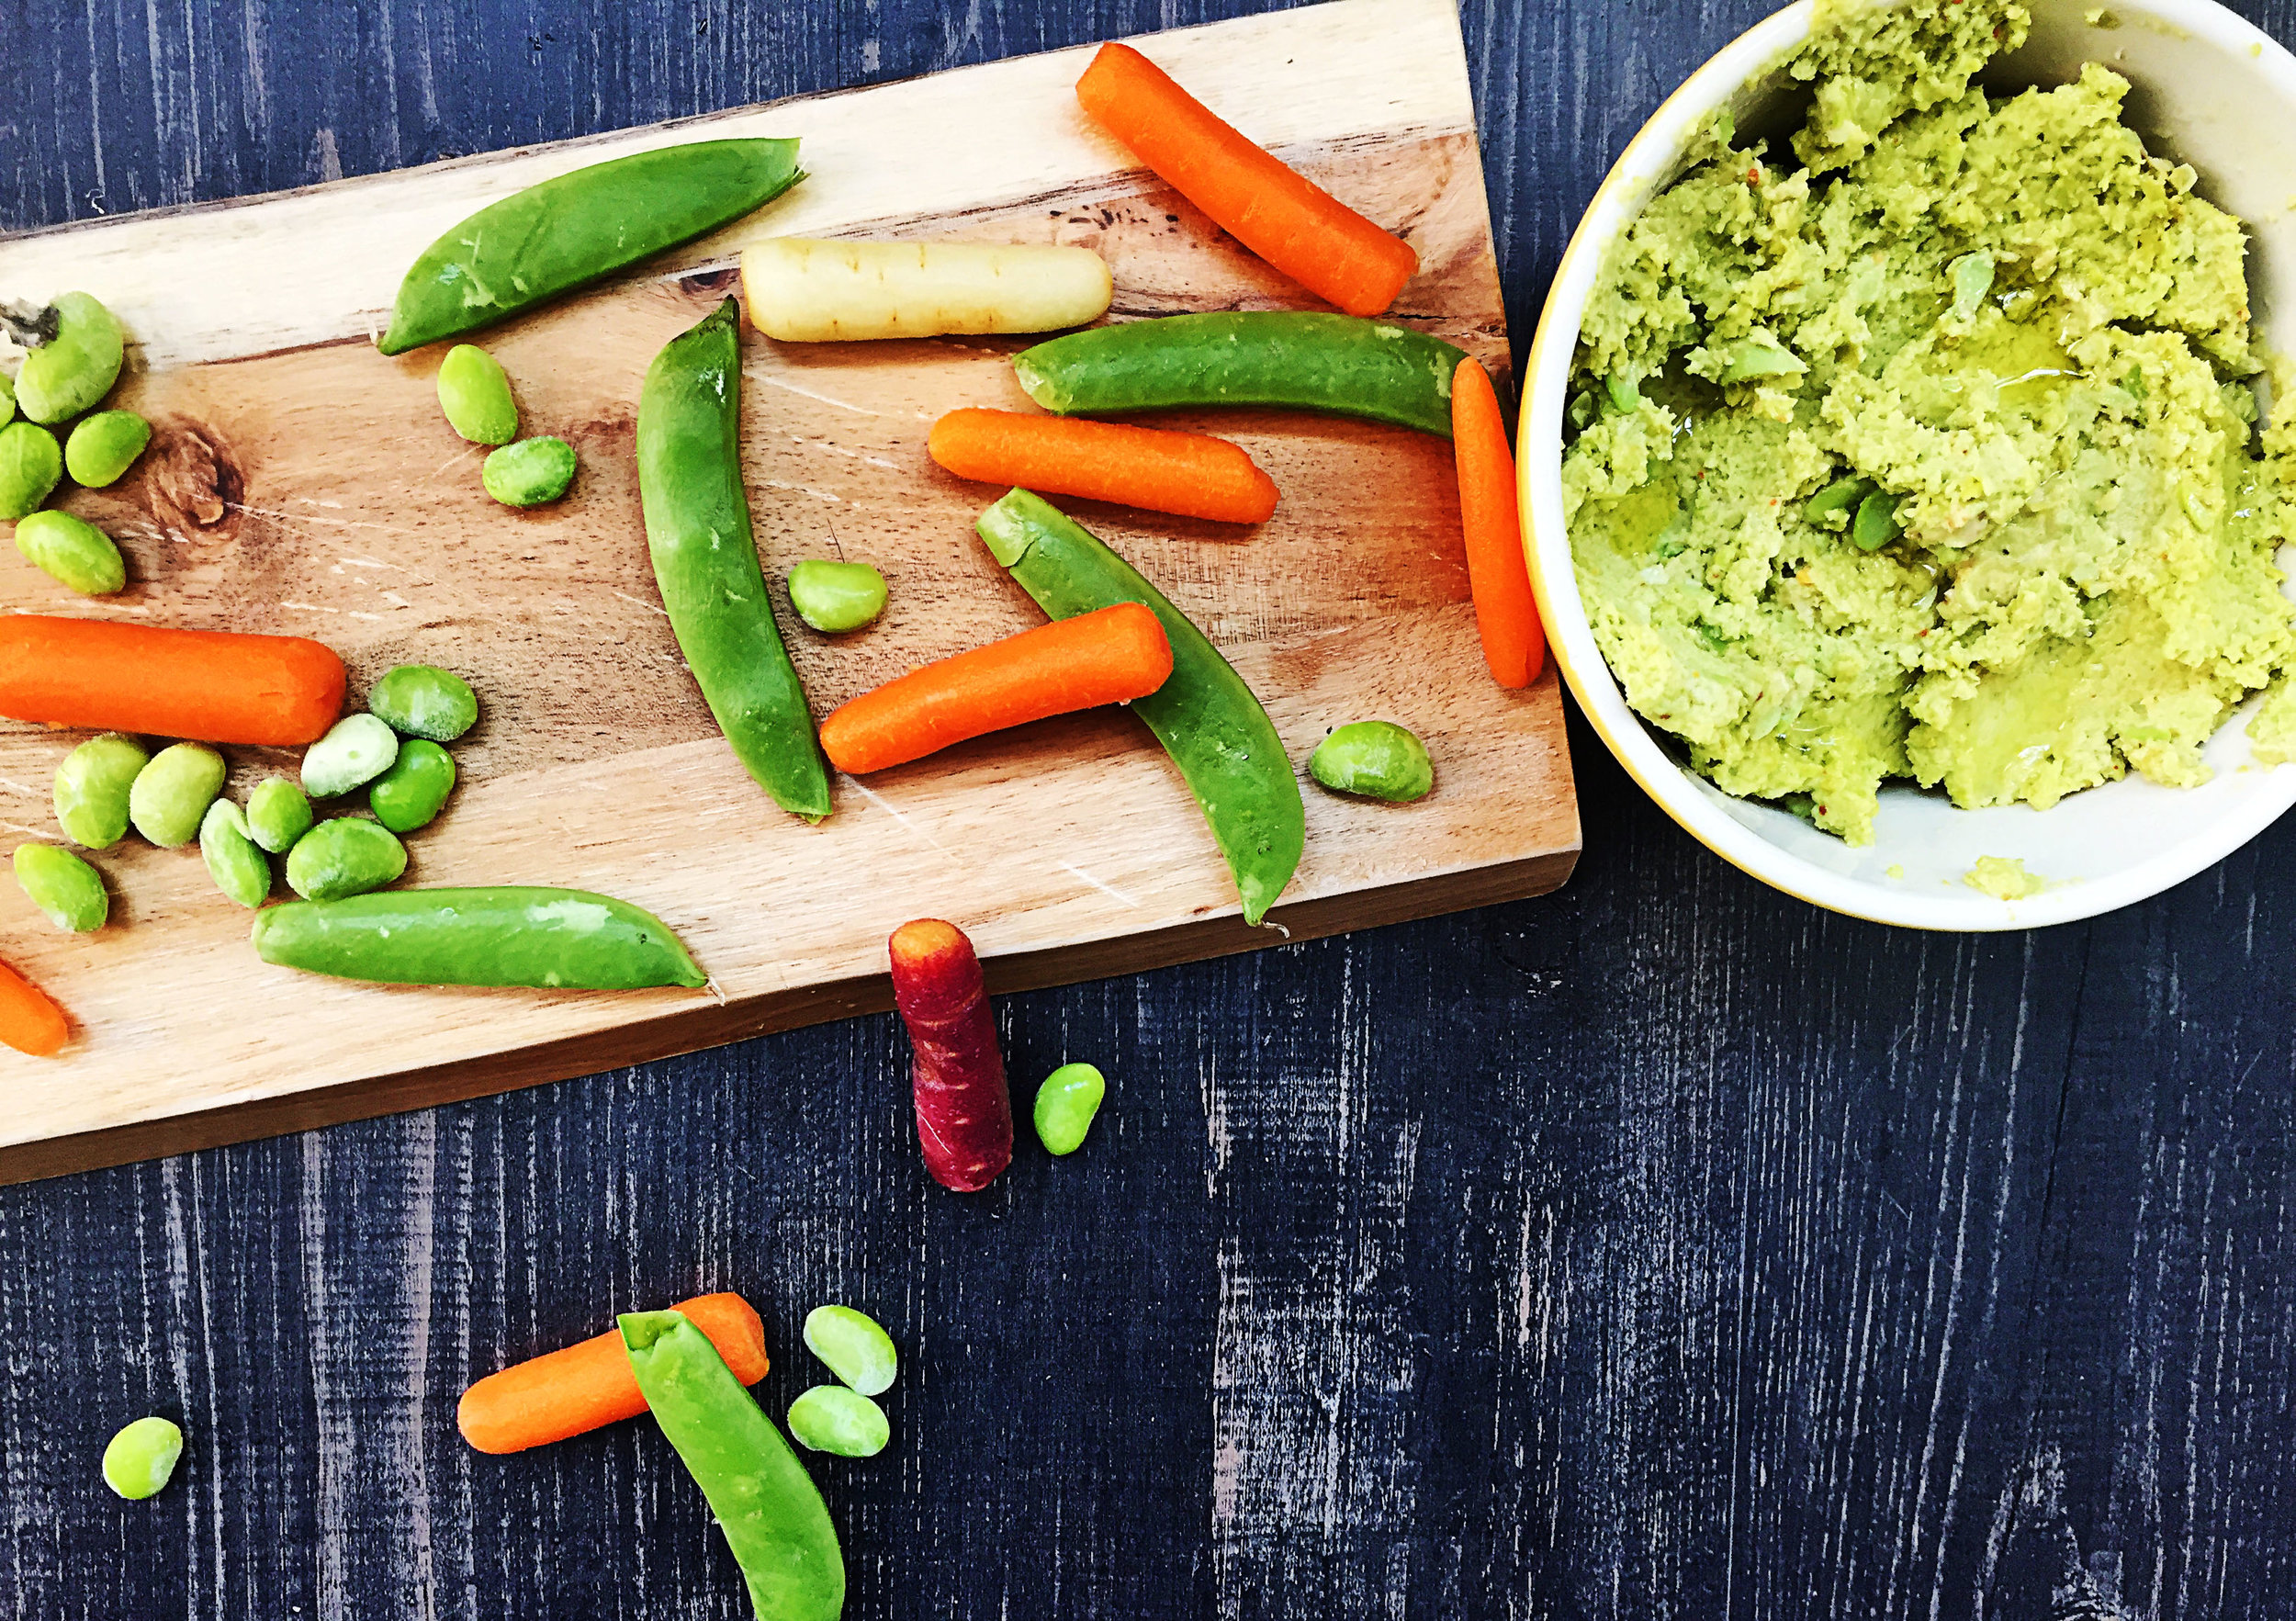 5. Serve with your favorite crudite: carrots, snap peas, broccoli, cauliflower, pita breads, etc. ENJOY!